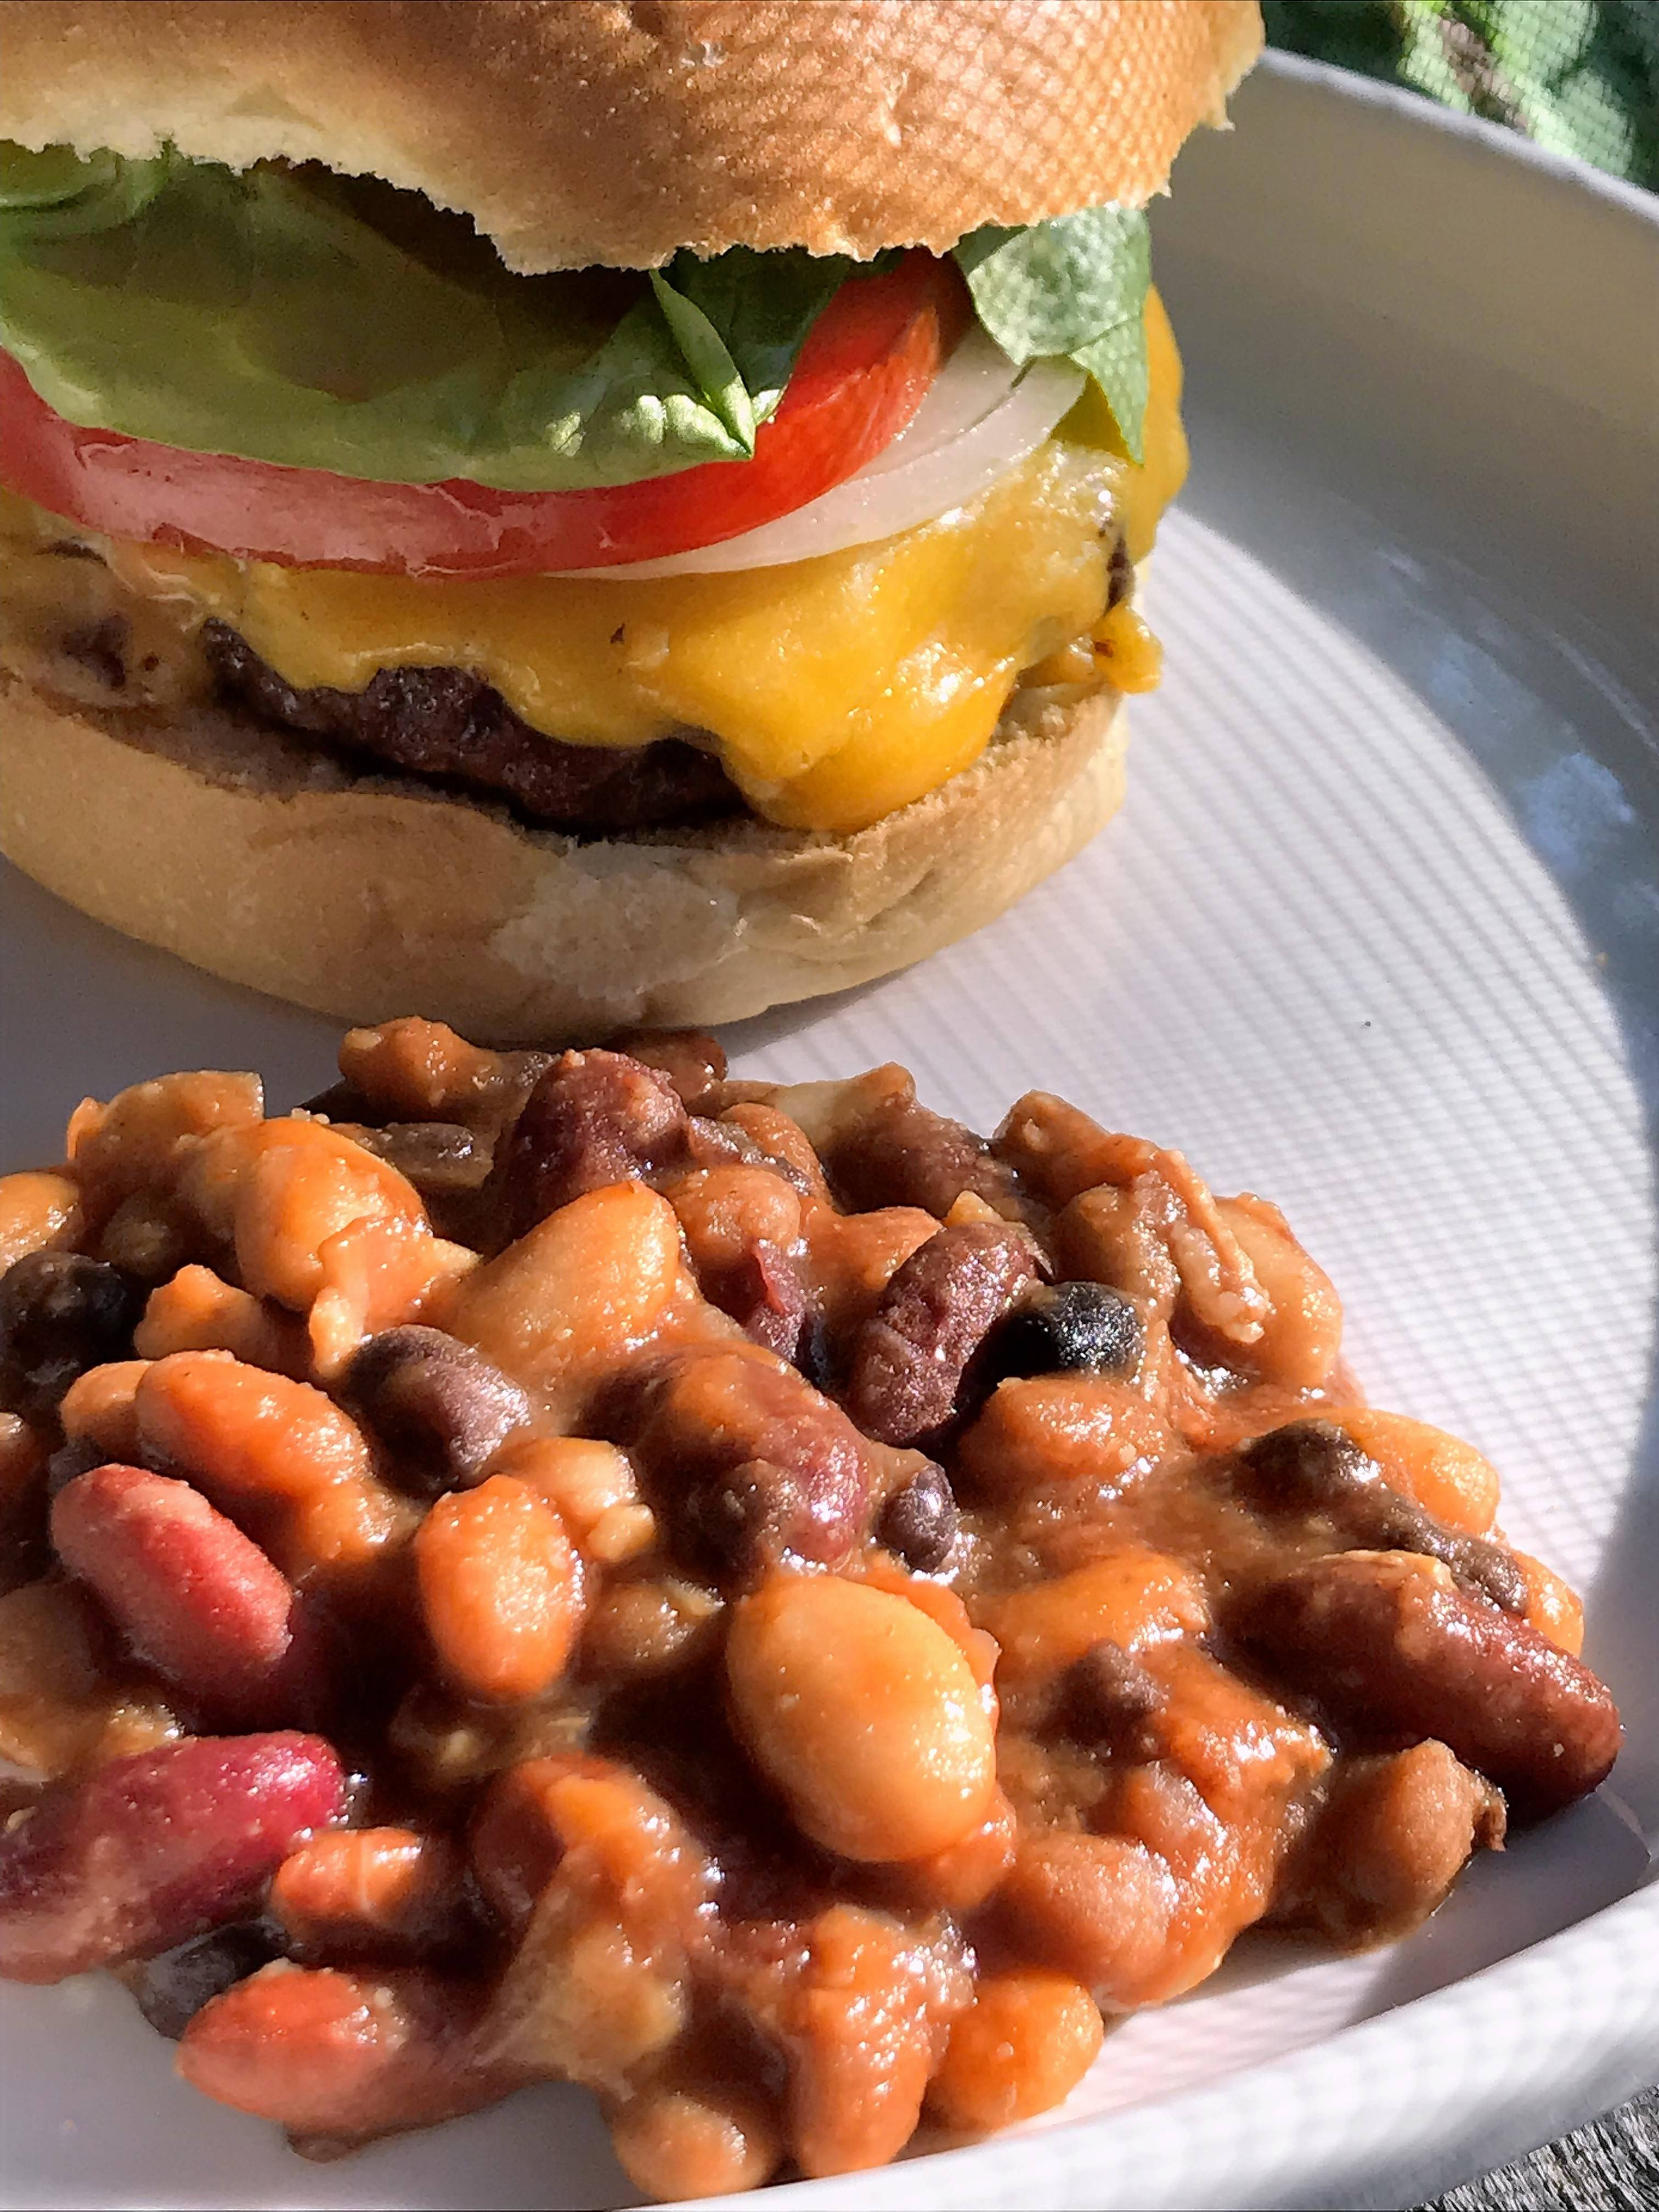 Sarah's BBQ Beans make the quintessential side to all-American comfort foods.